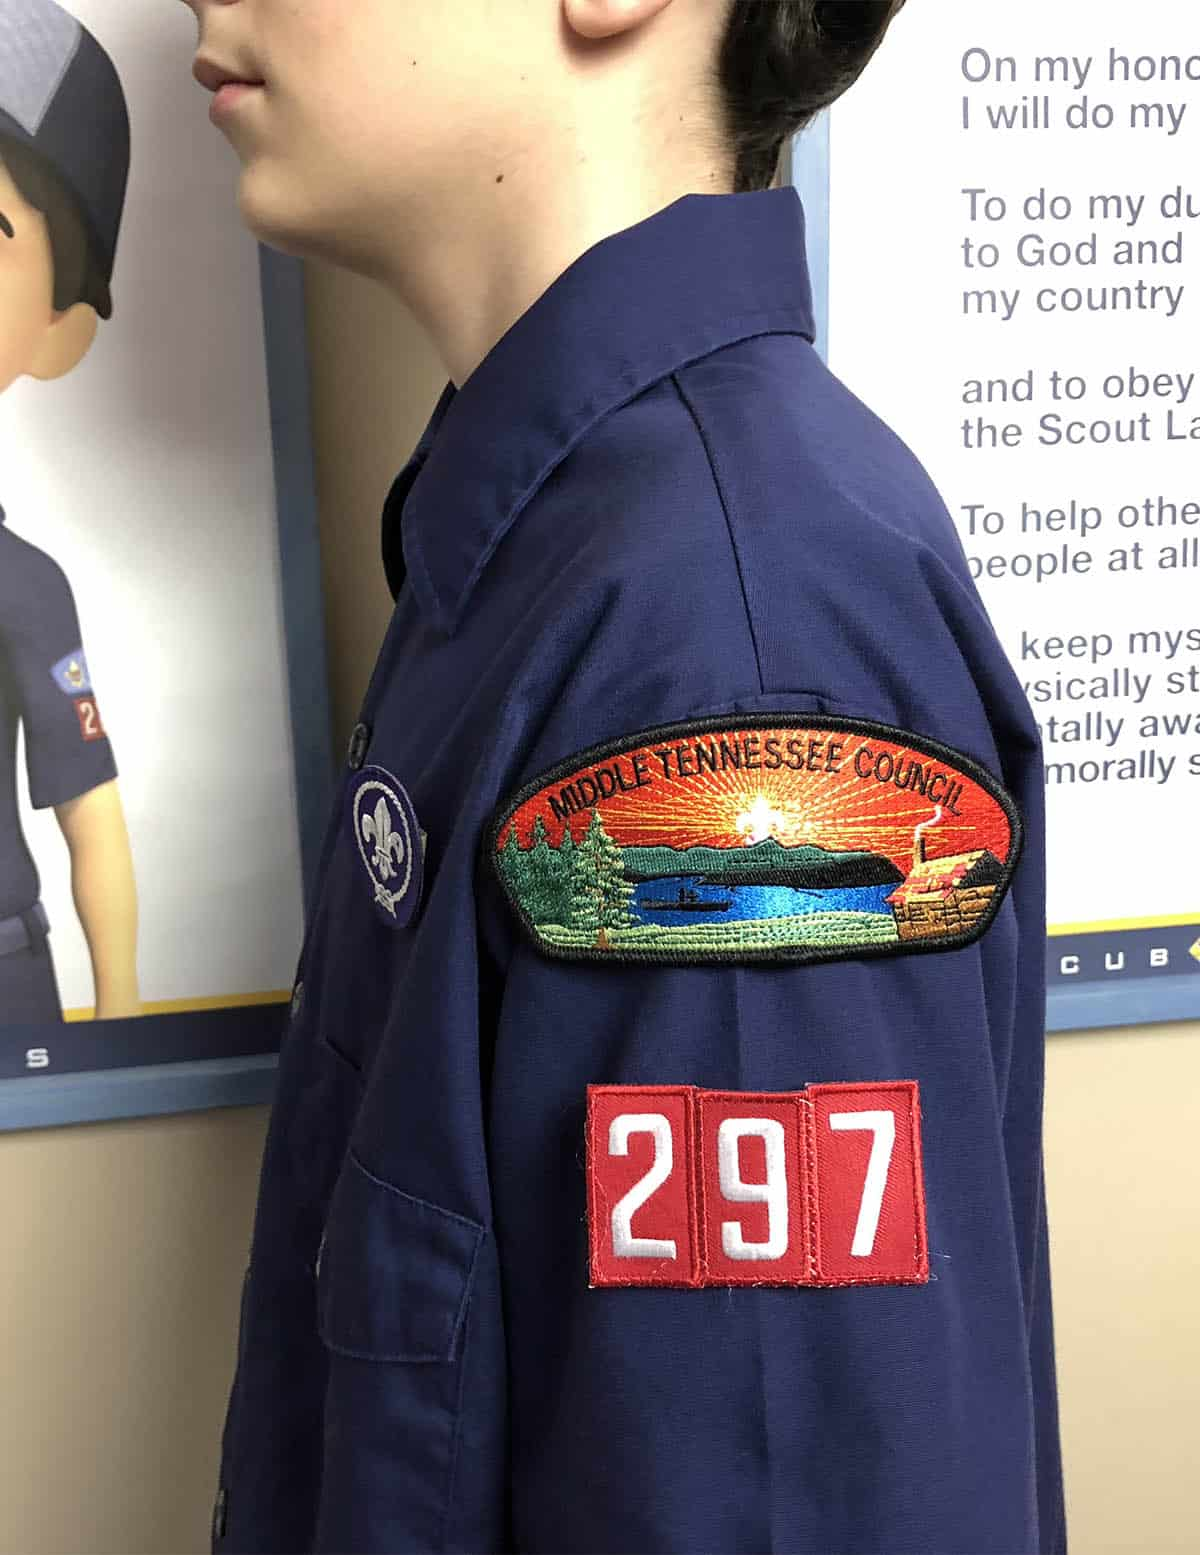 council patch and pack number on Cub Scout uniform